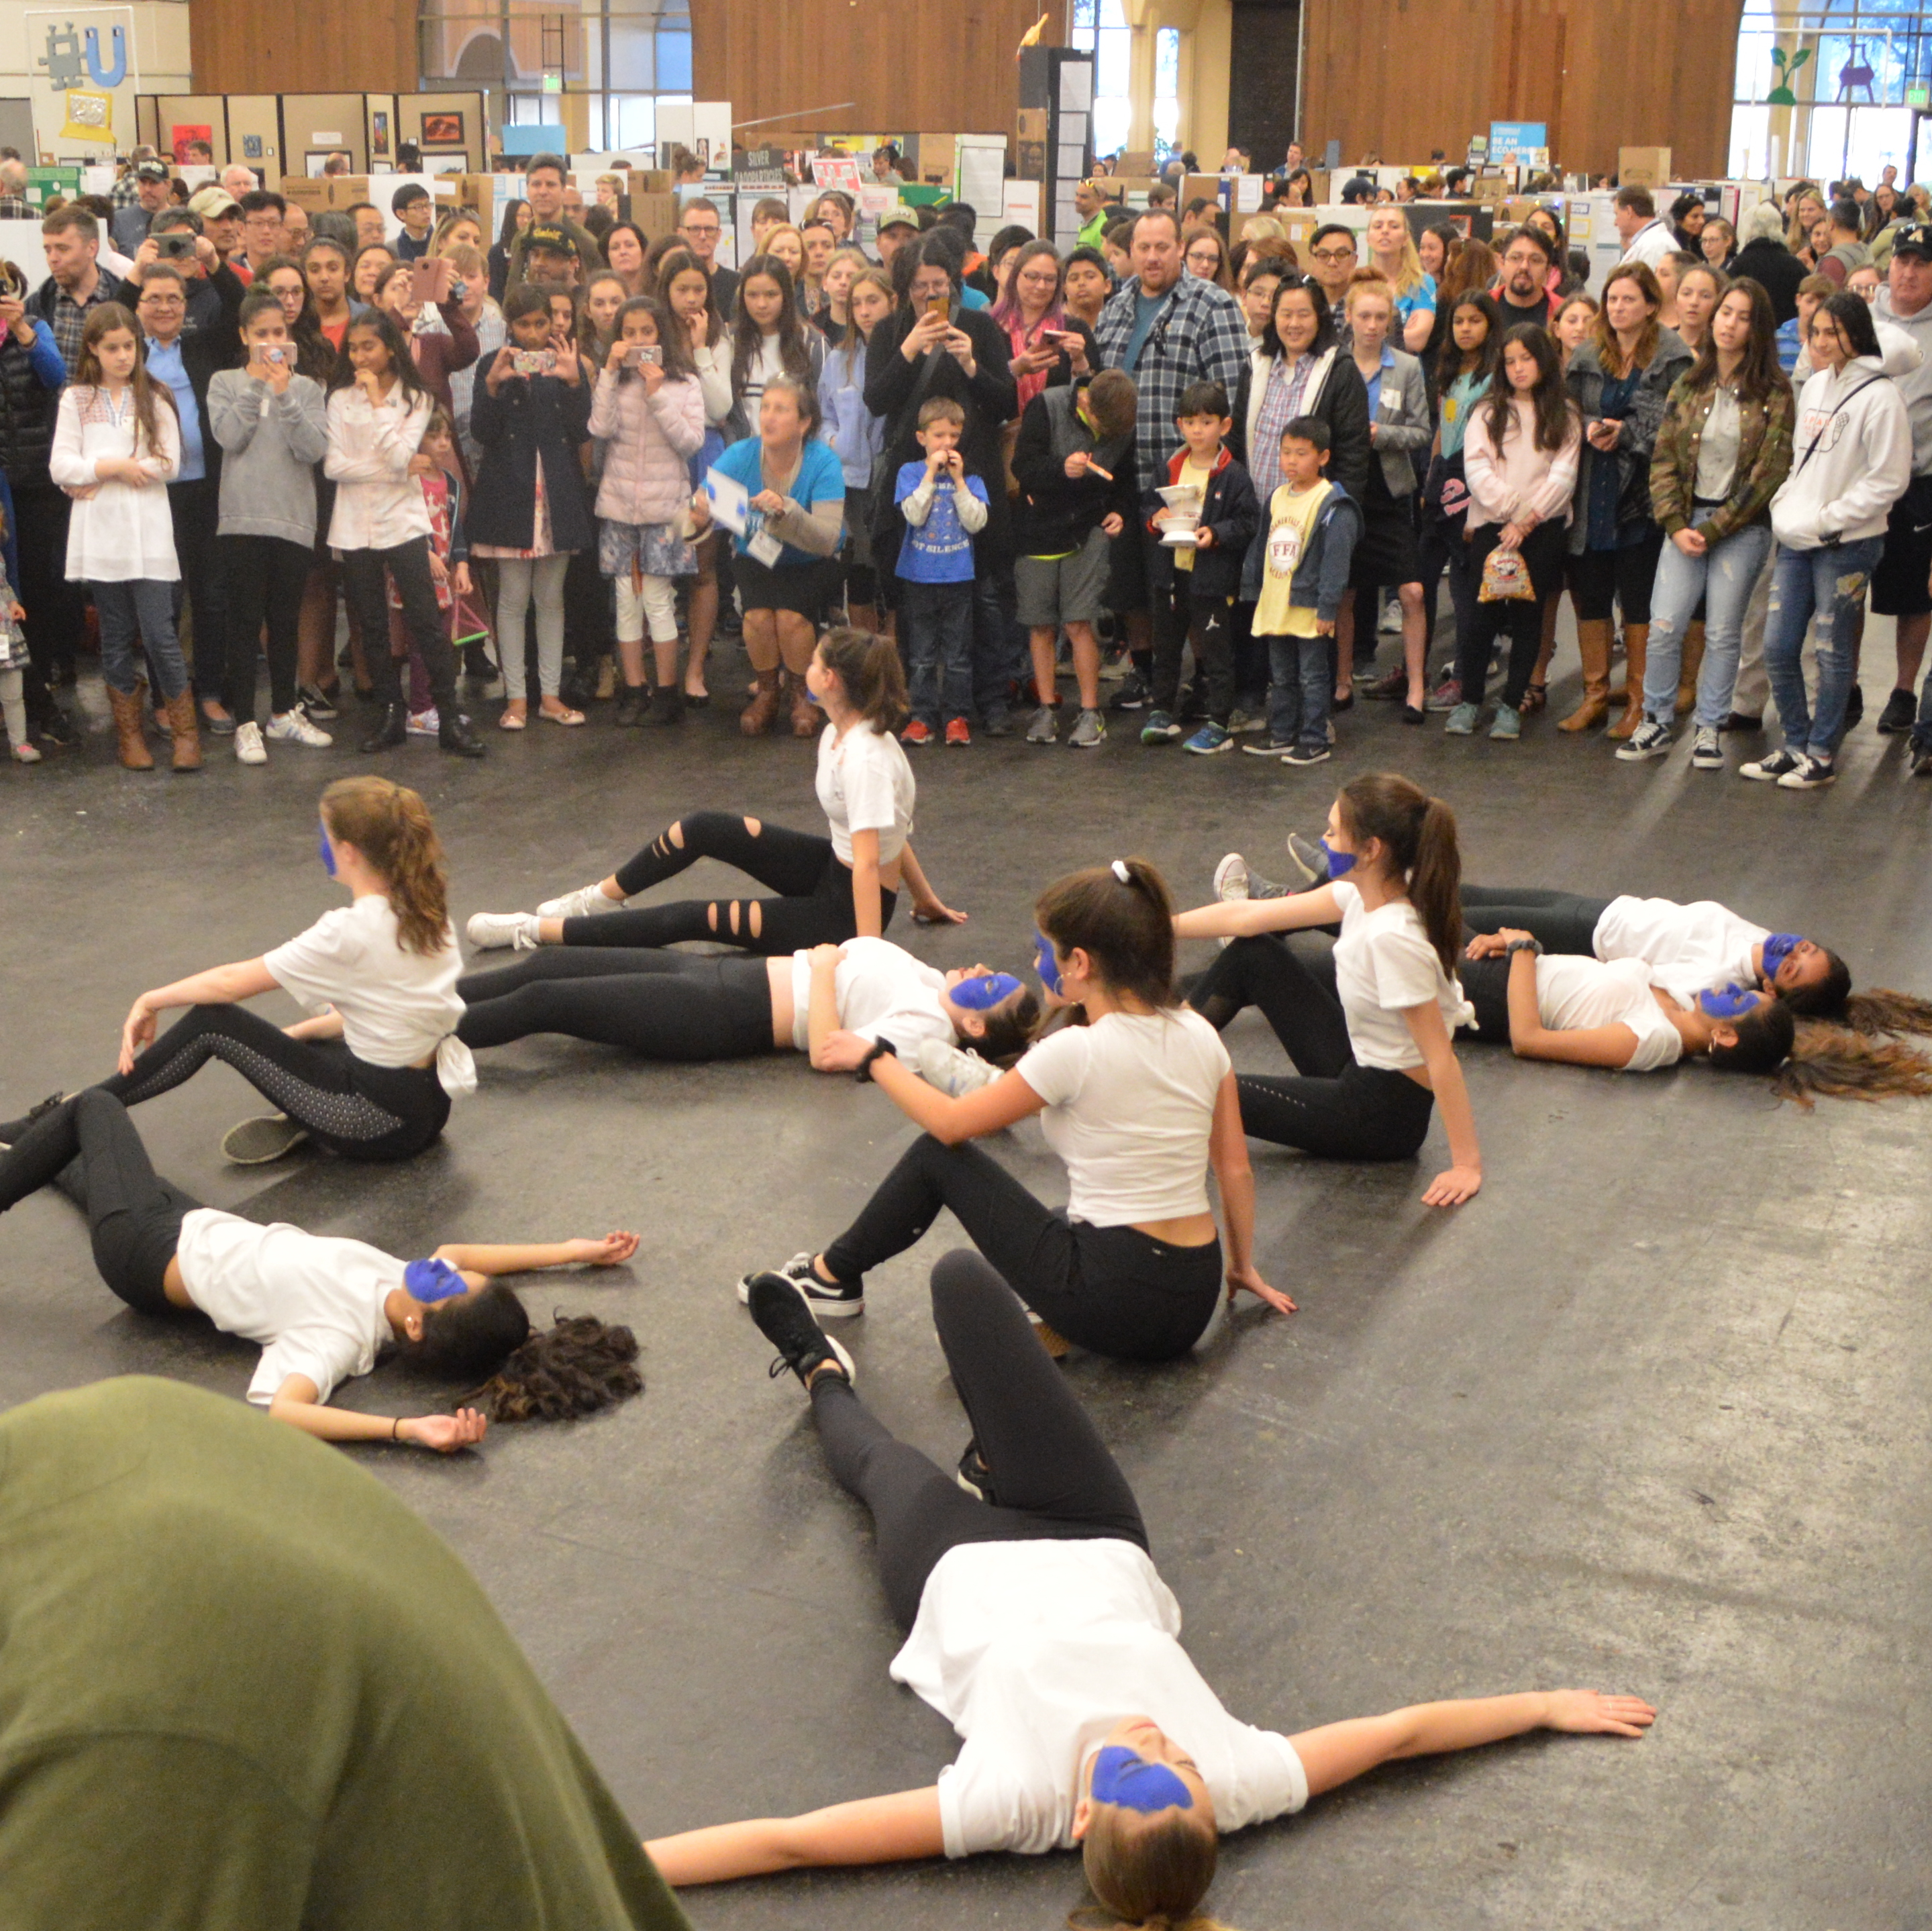 Students perform an interpretive dance number at The Next Big Think.